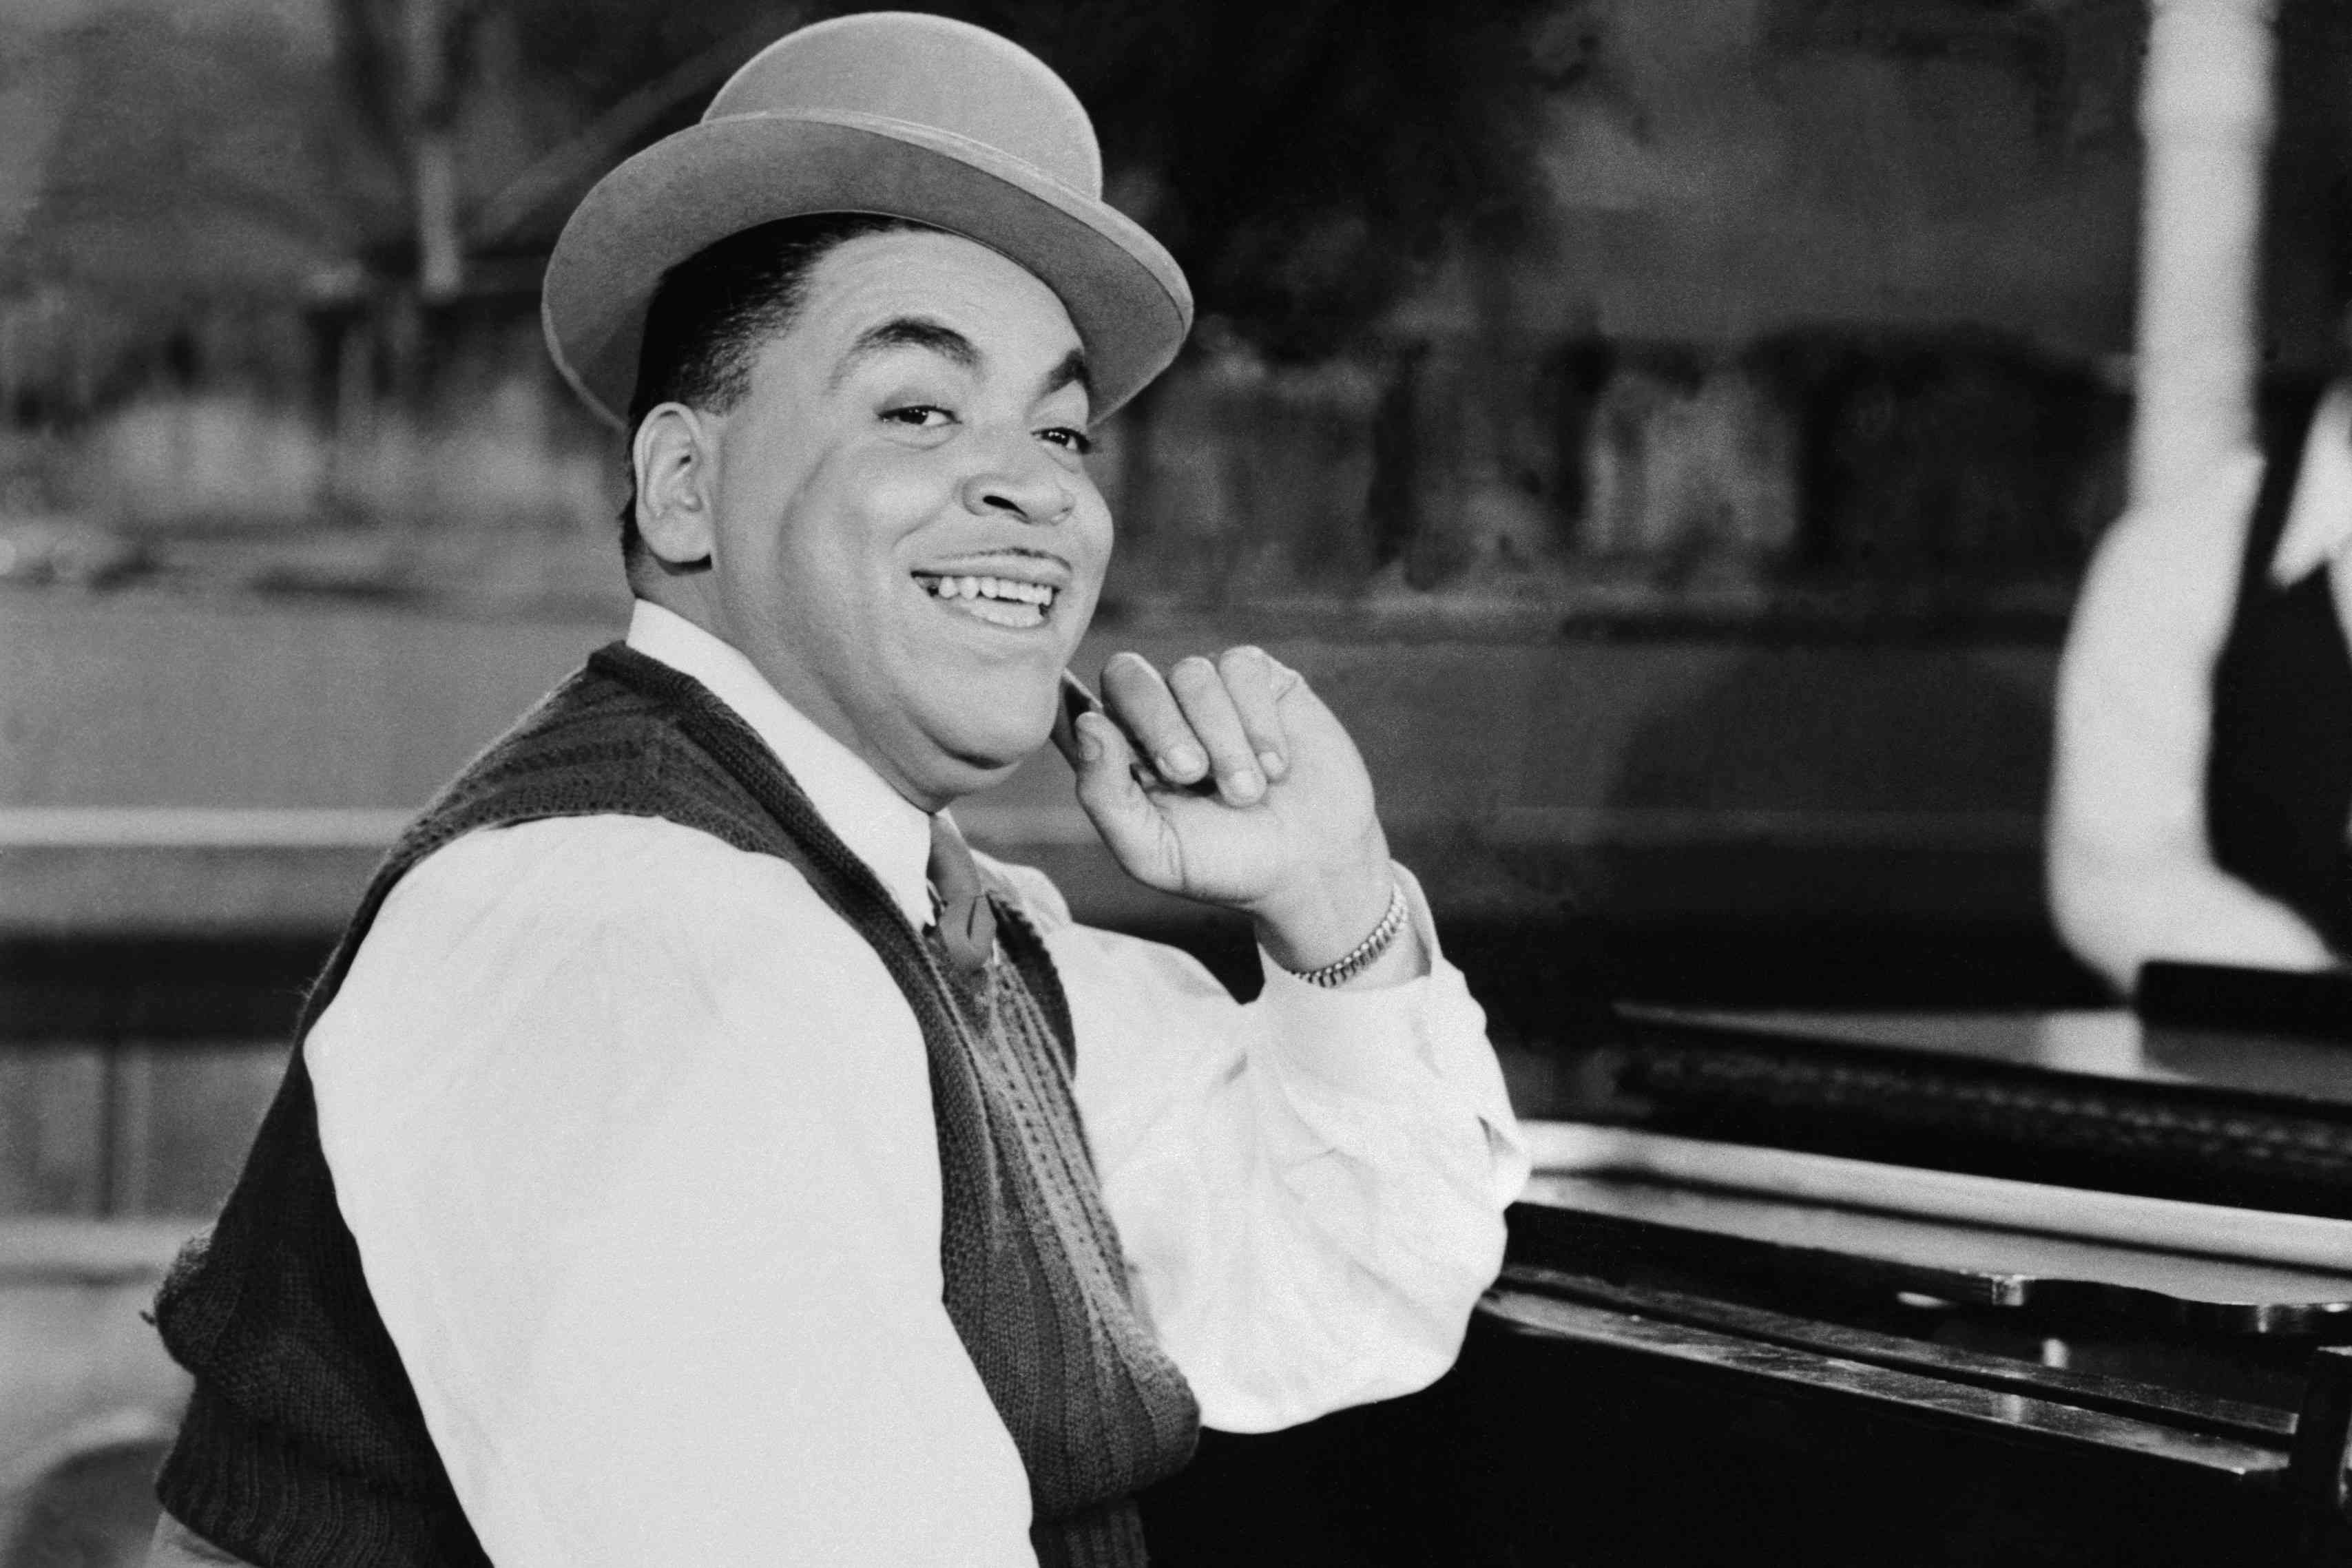 Fats Waller leaning against a piano and smiling, wearing a hat and vest